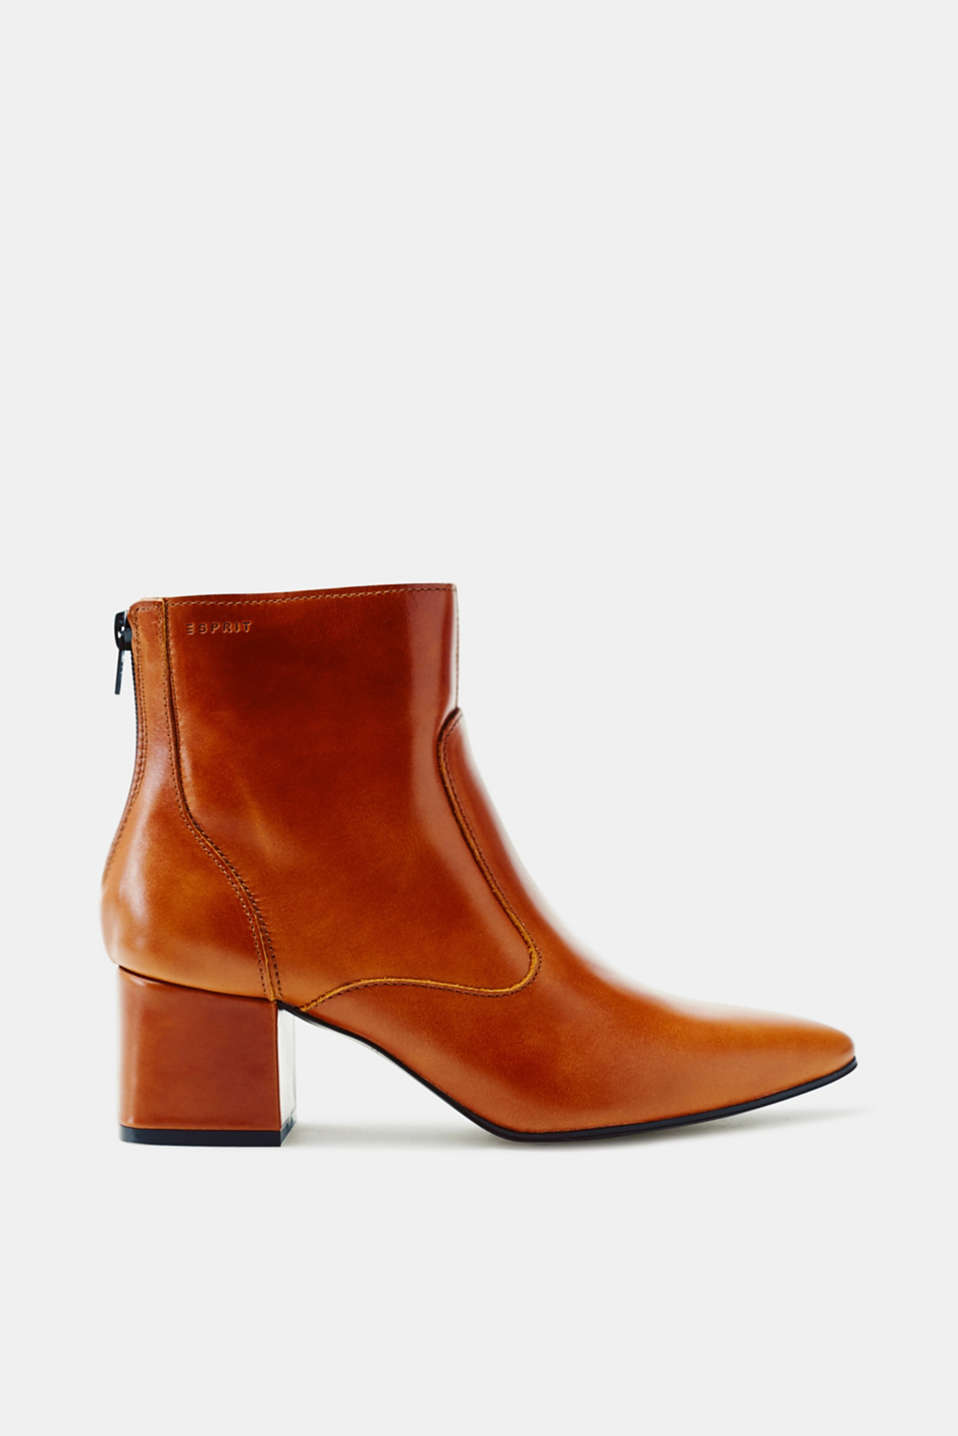 Esprit - Leather ankle boot with a block heel